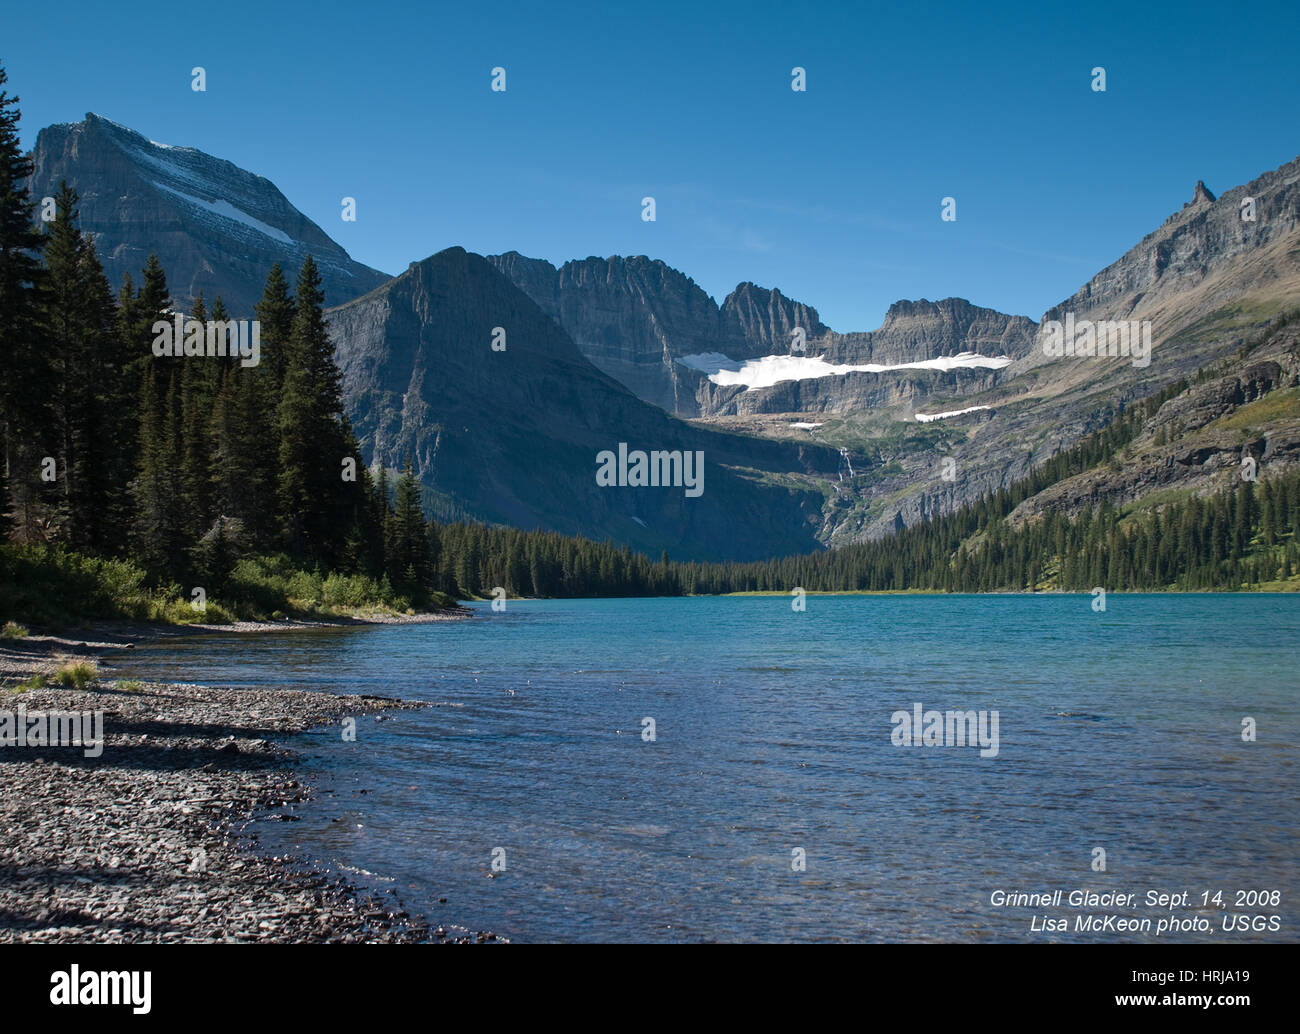 Grinnell Glacier, Lake Josephine, 2008 - Stock Image